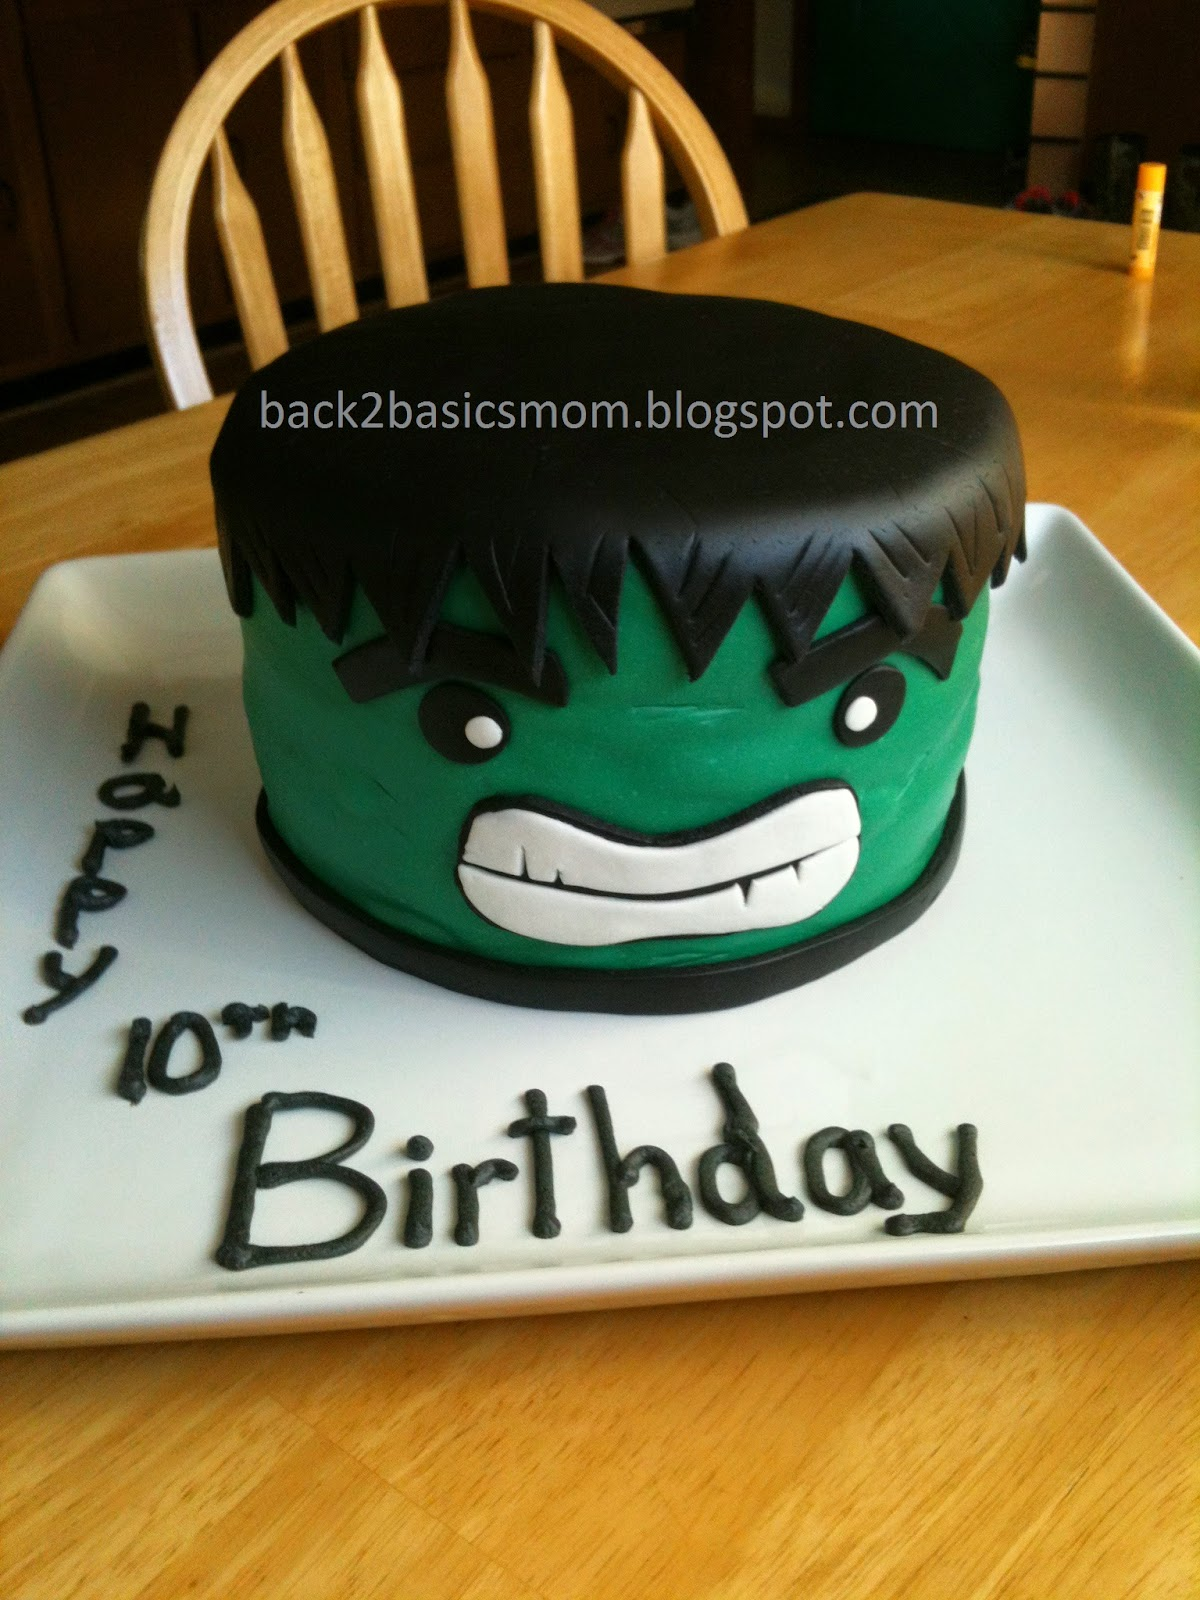 Back to basics cakes i have made my boy turned 10 a few weeks back and he requested an avengers cake hulk is his favorite so in favor of relative simplicity i went with it maxwellsz